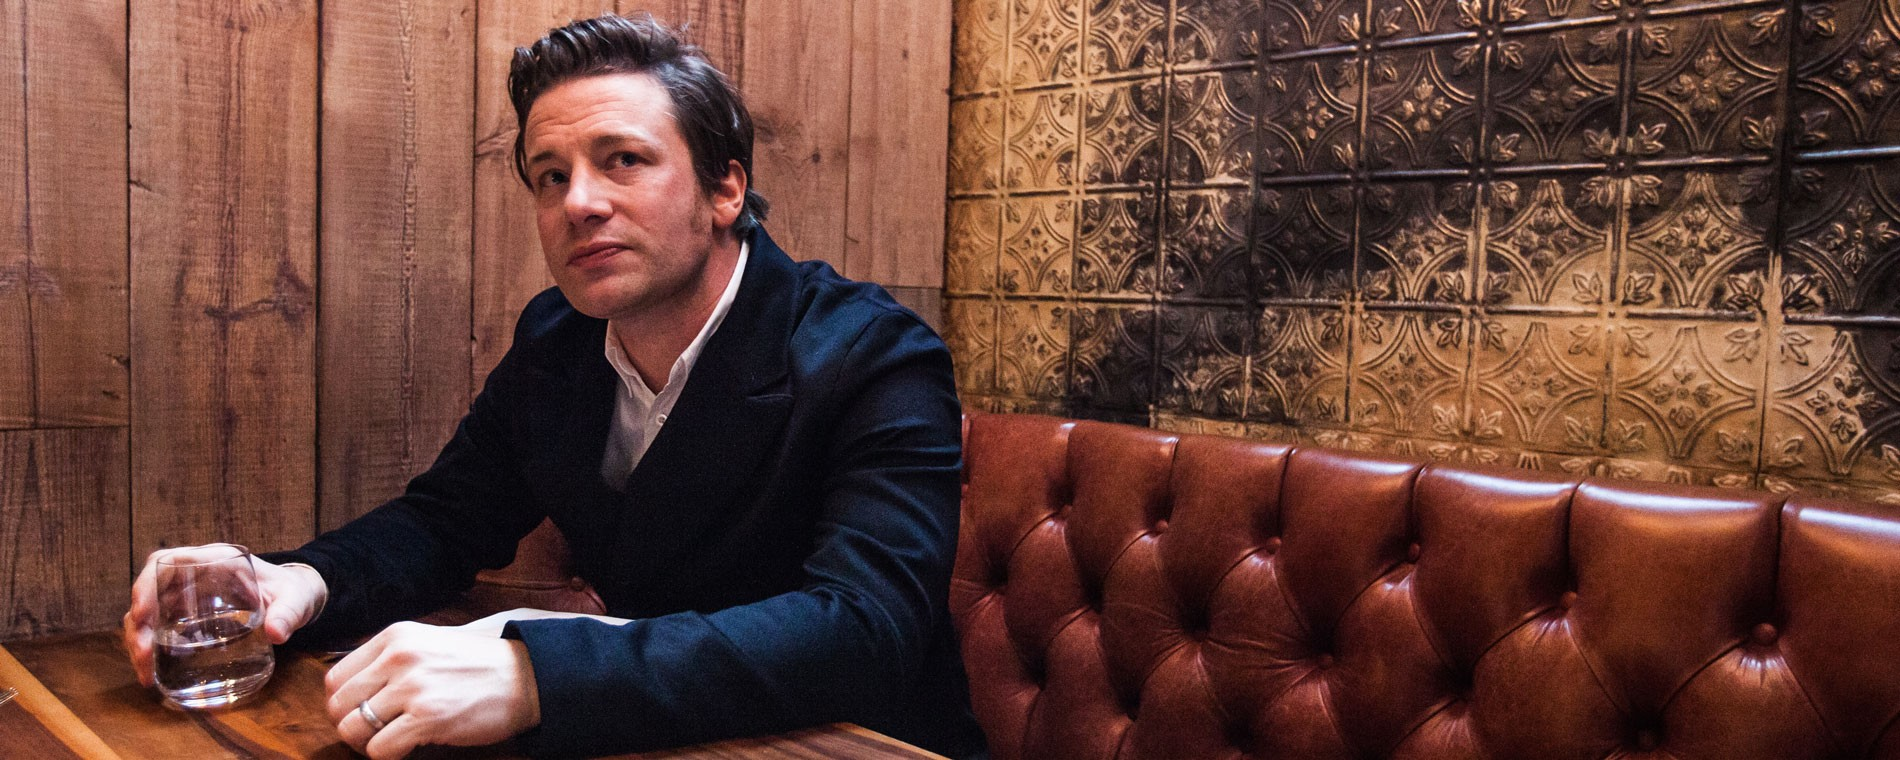 Jamie Oliver Doesn't Want to Be a Hipster Chef